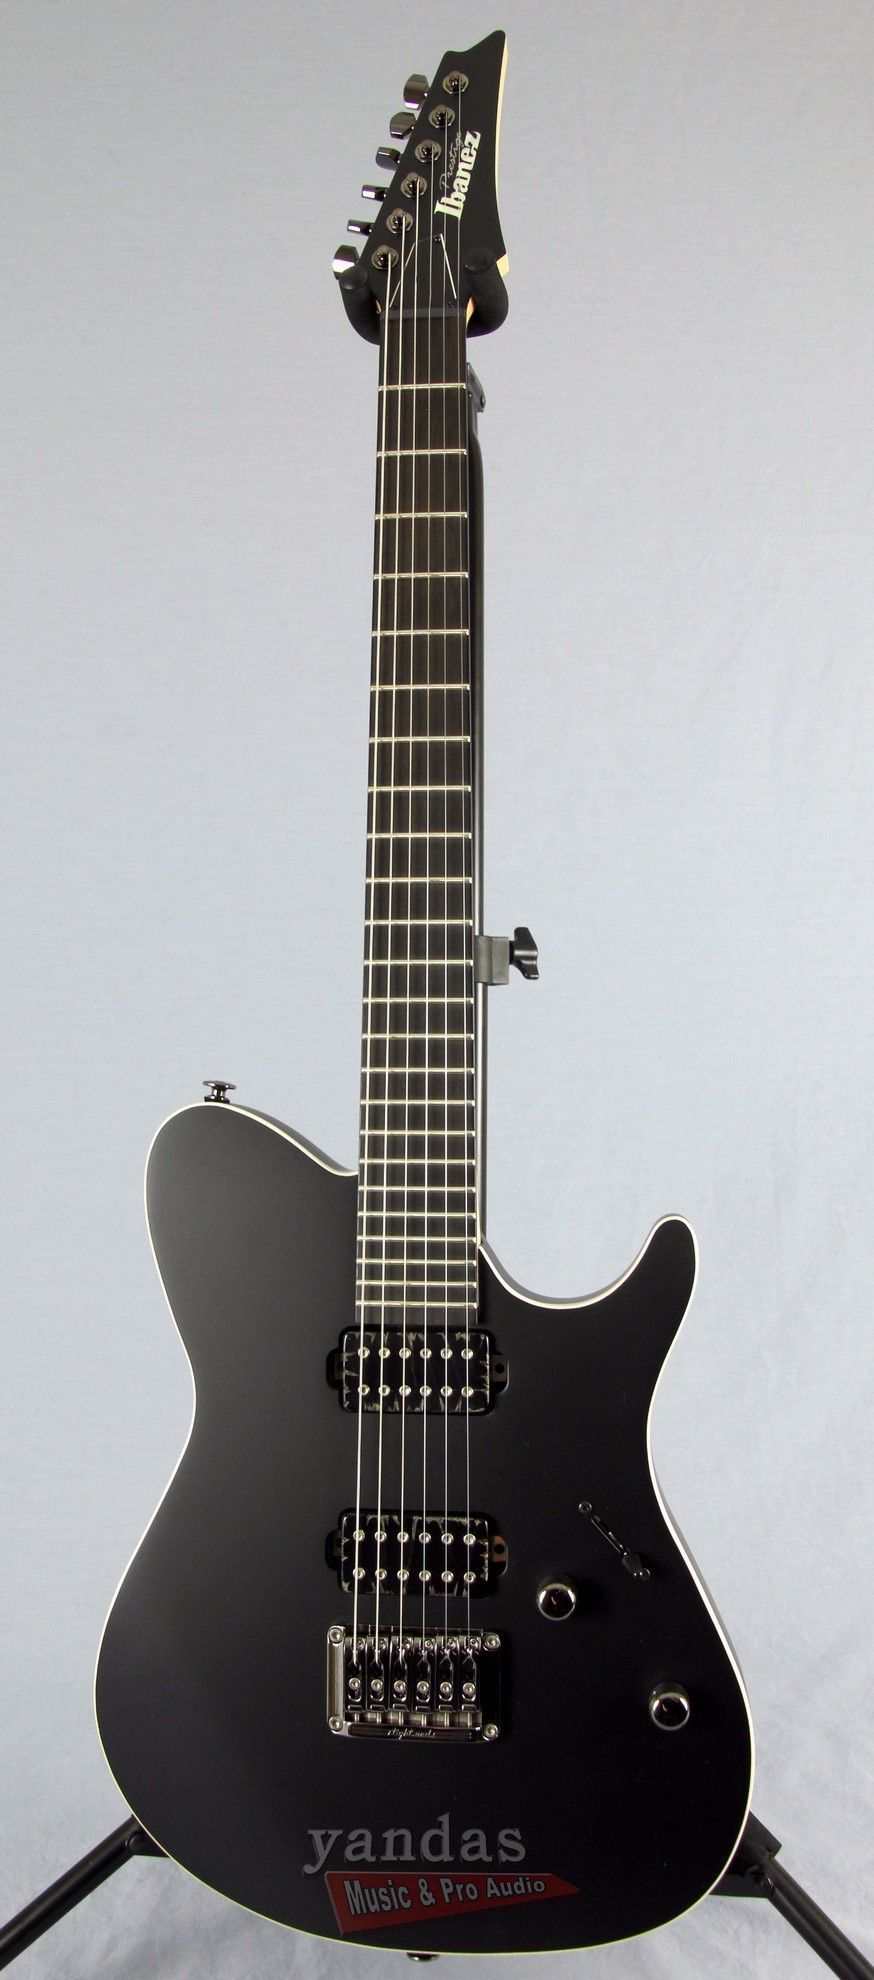 The Fr6uc Prestige Electric Guitar From Ibanez Boasts A Number Of